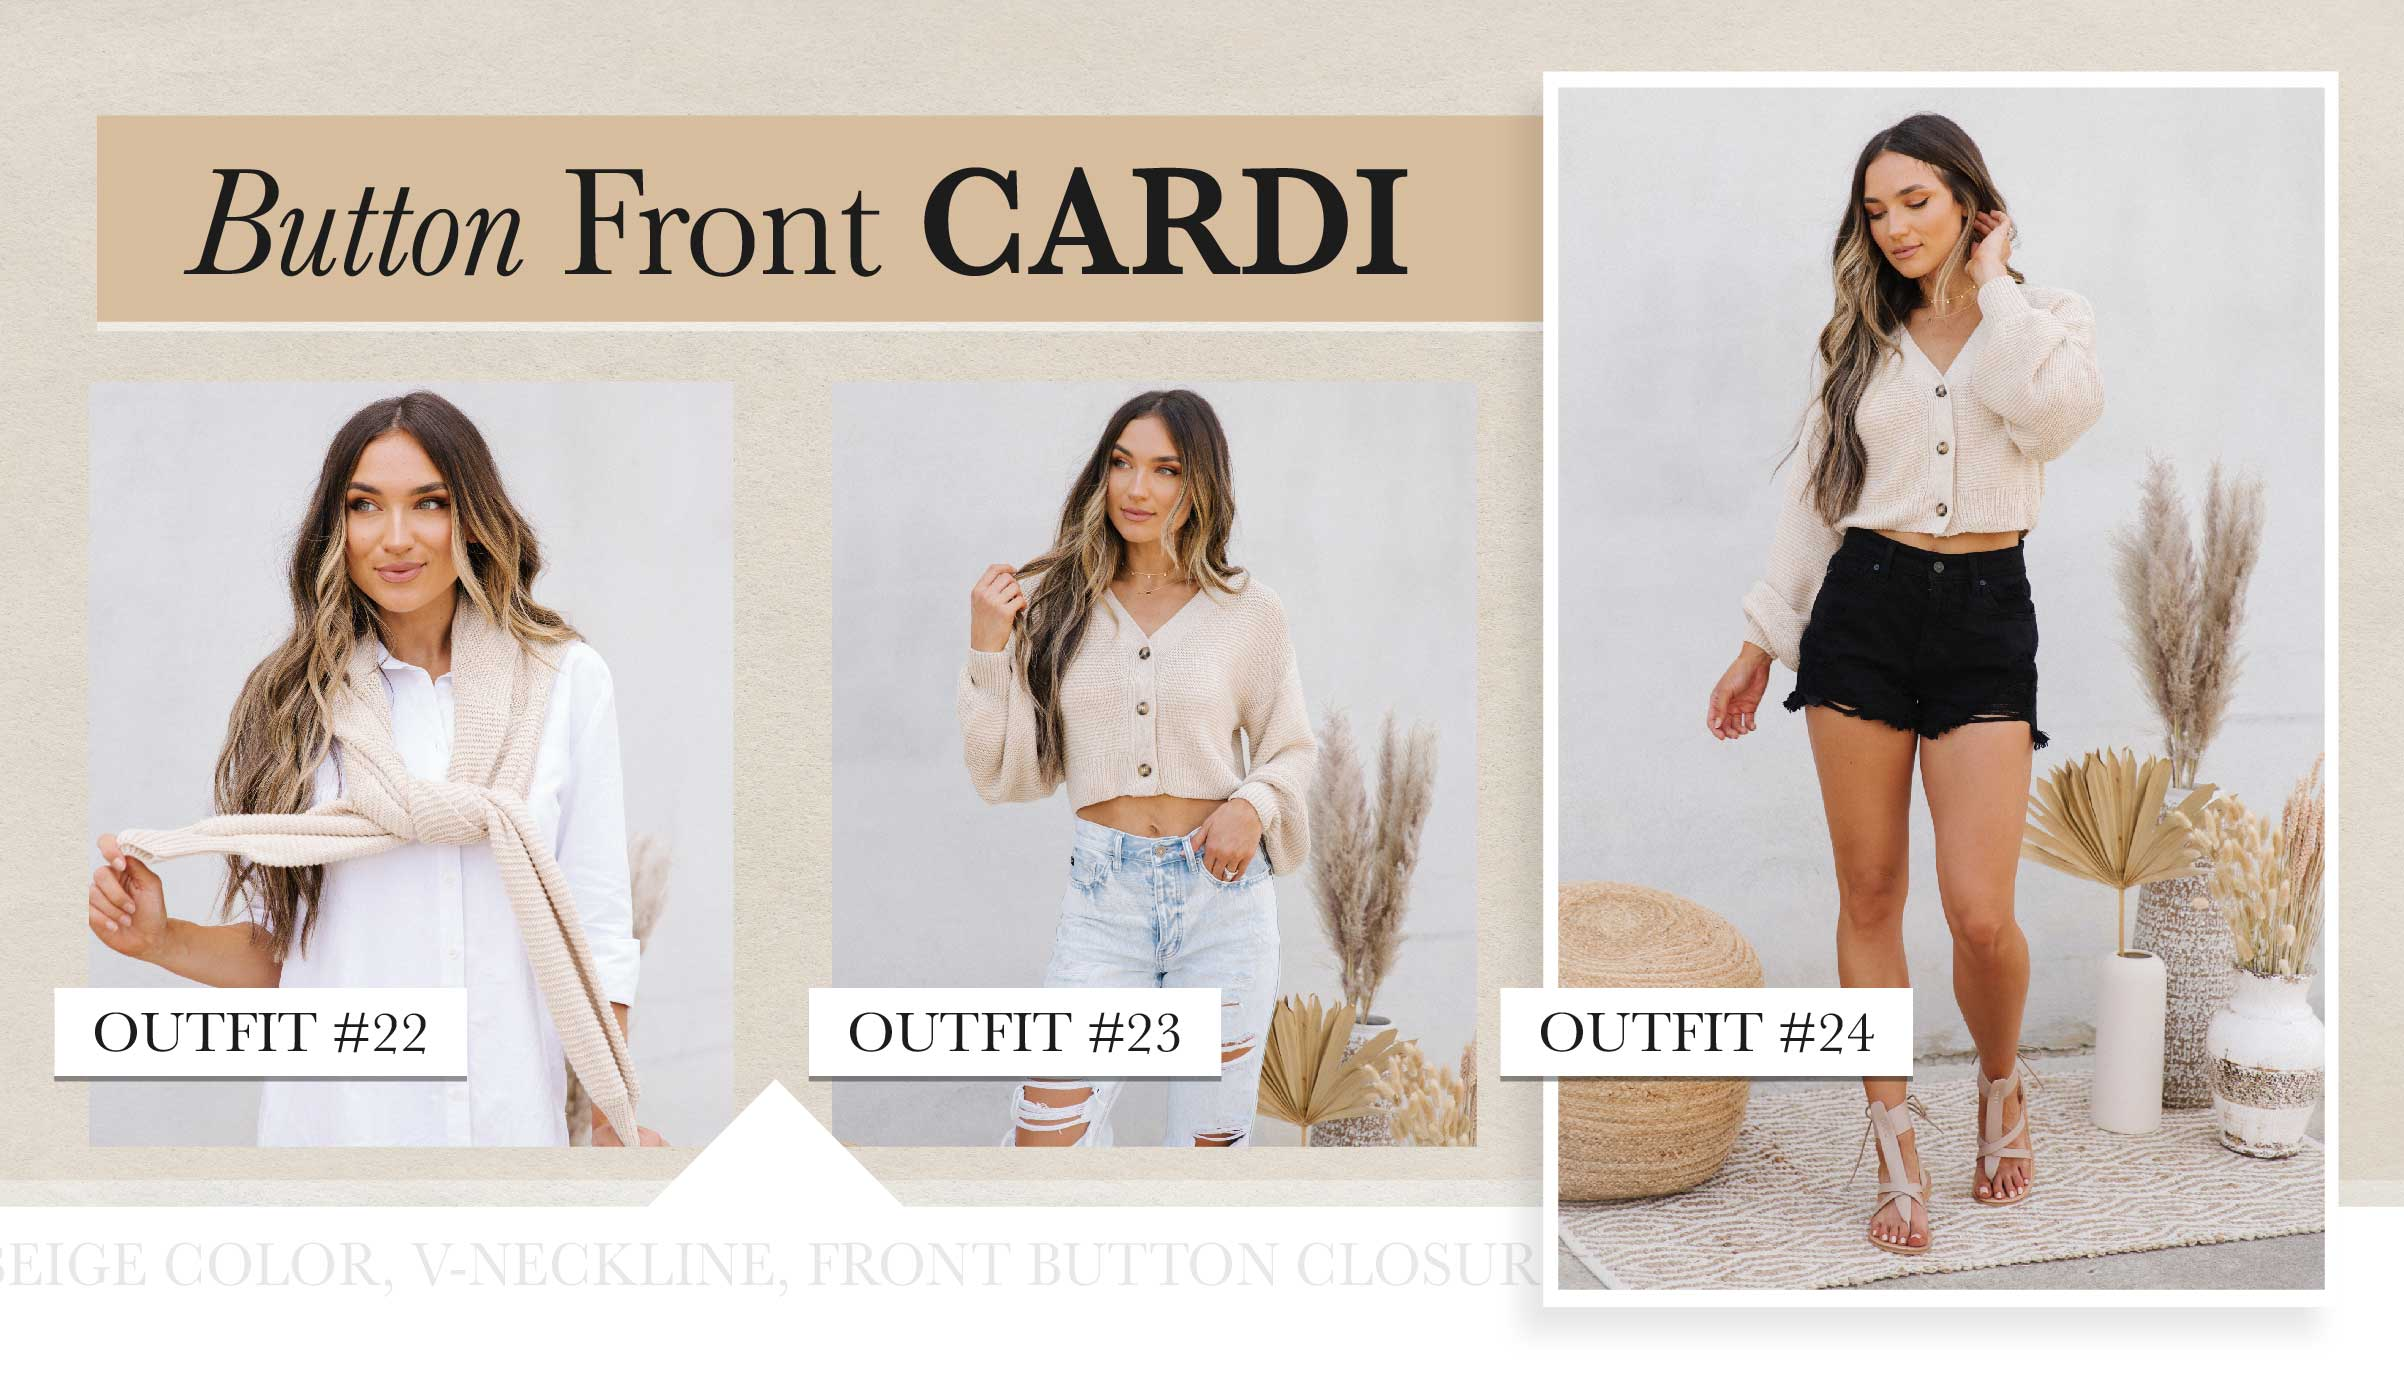 When the sun sets but there's still more fun to have, you'll need a little layer of warmth. Cropped cardis are ideal for that day-to-night look. We love the look of it tied around your shoulders for a preppy vibe!